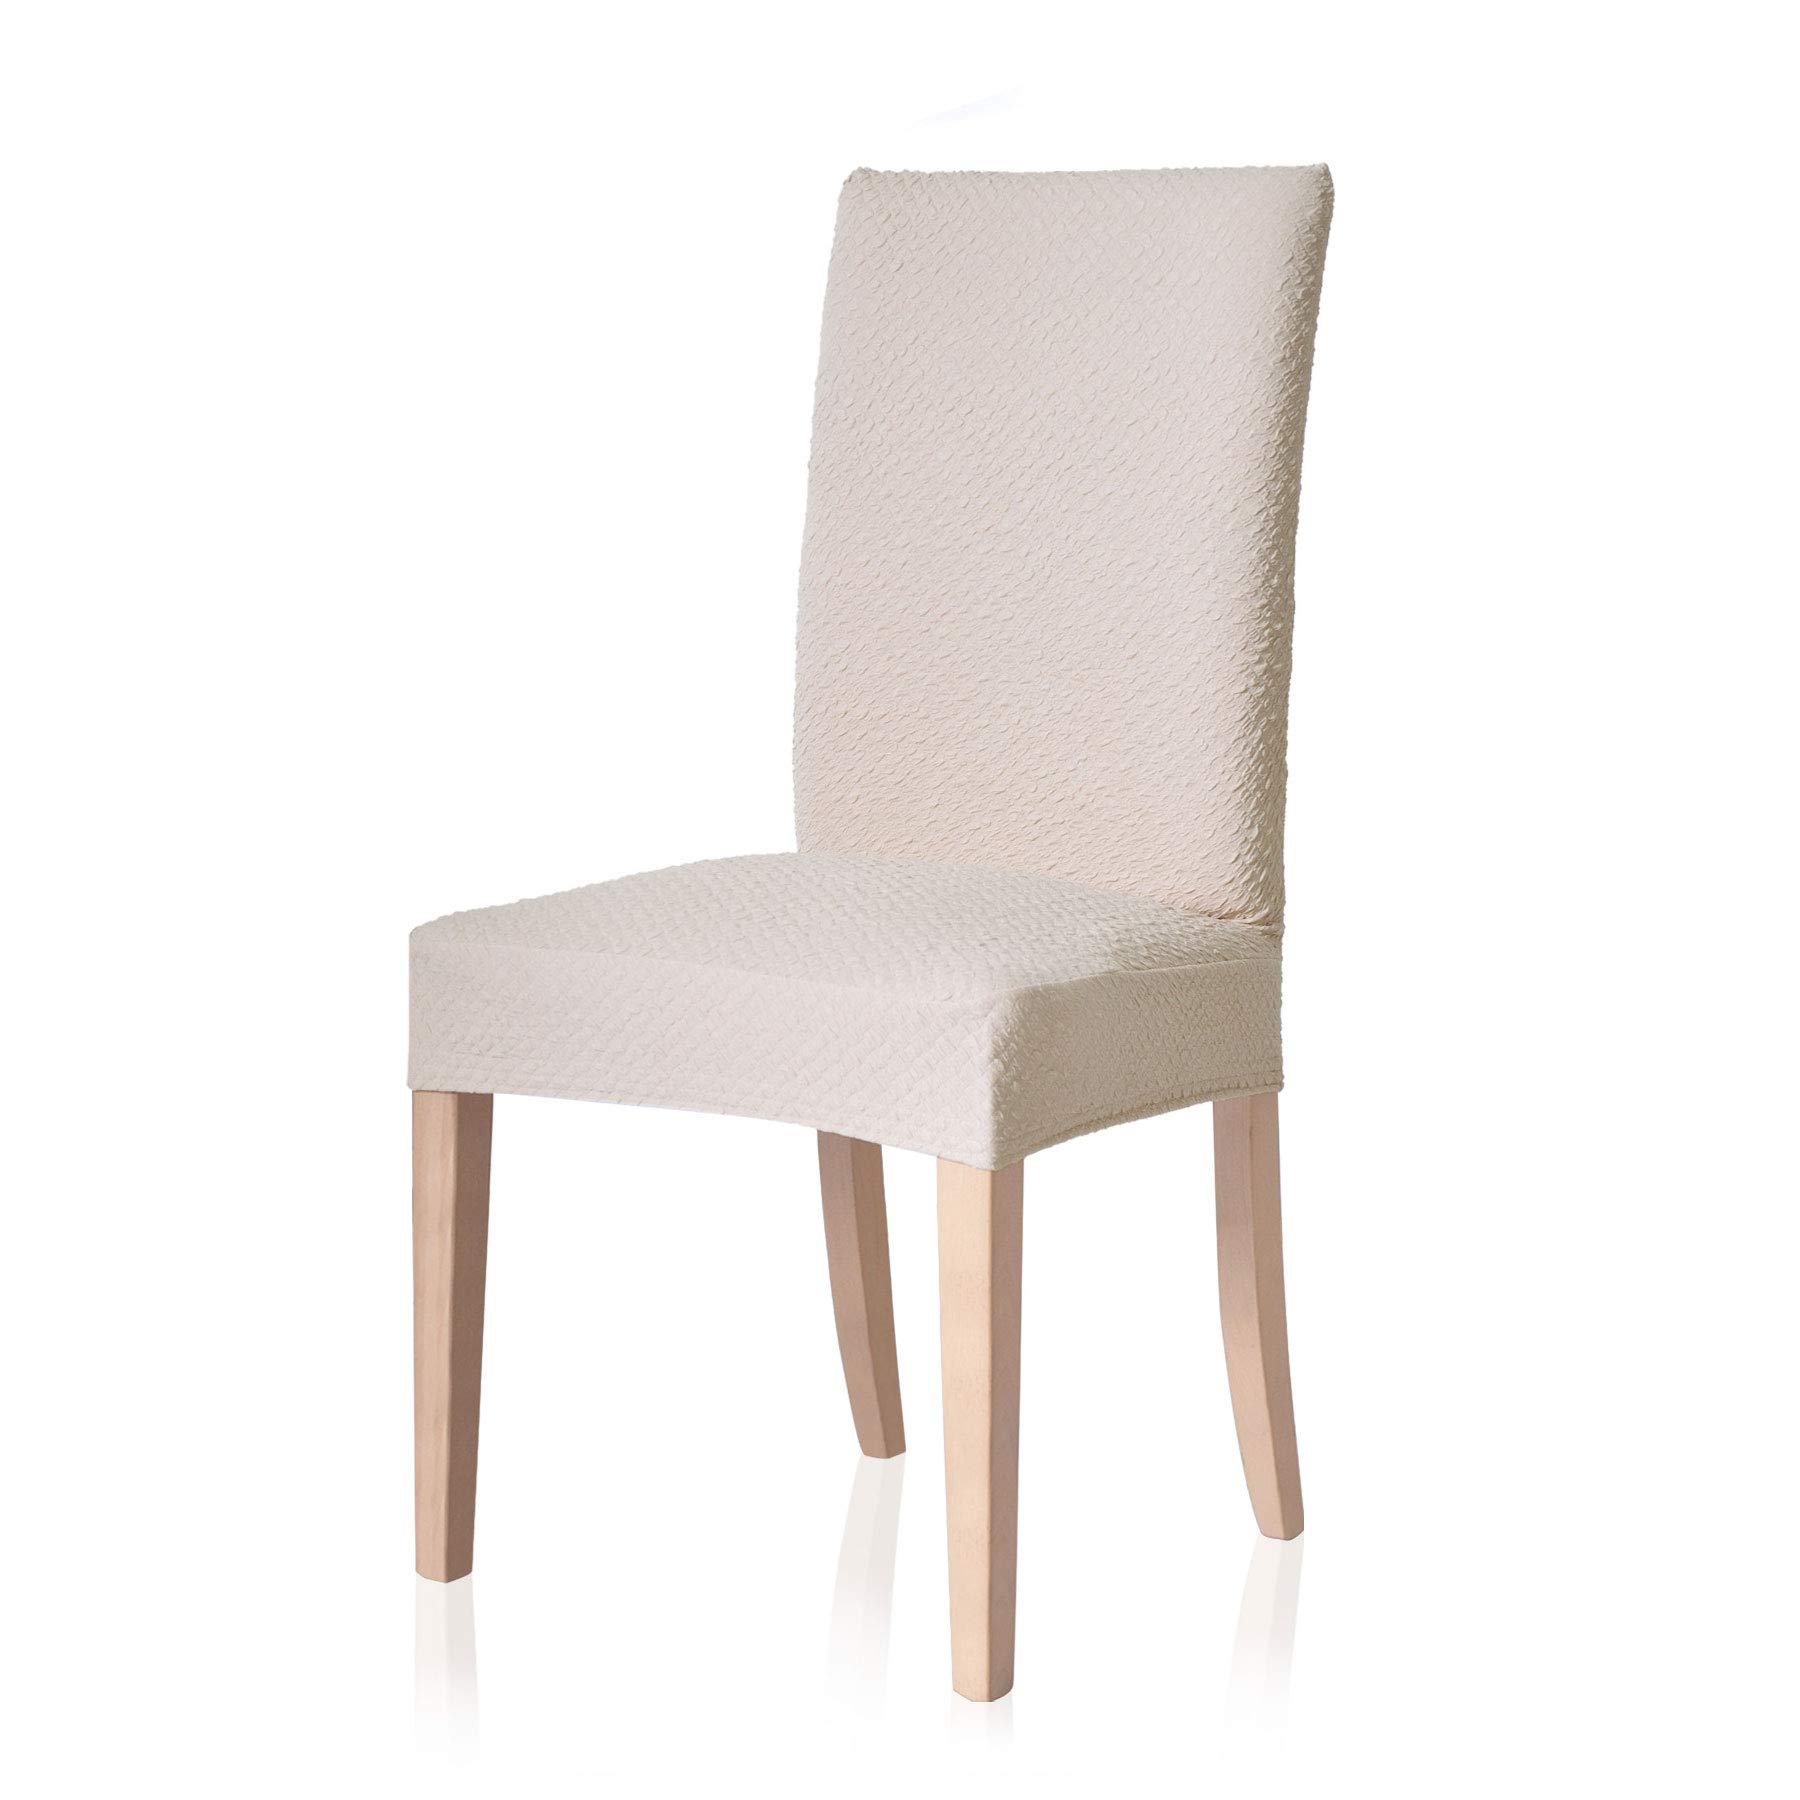 TOYABR Knitted Stretchy Dining Chair Covers Jacquard Spandex Chair Protect Slipcovers for Banquet Wedding Party (4, Cream Ivory)